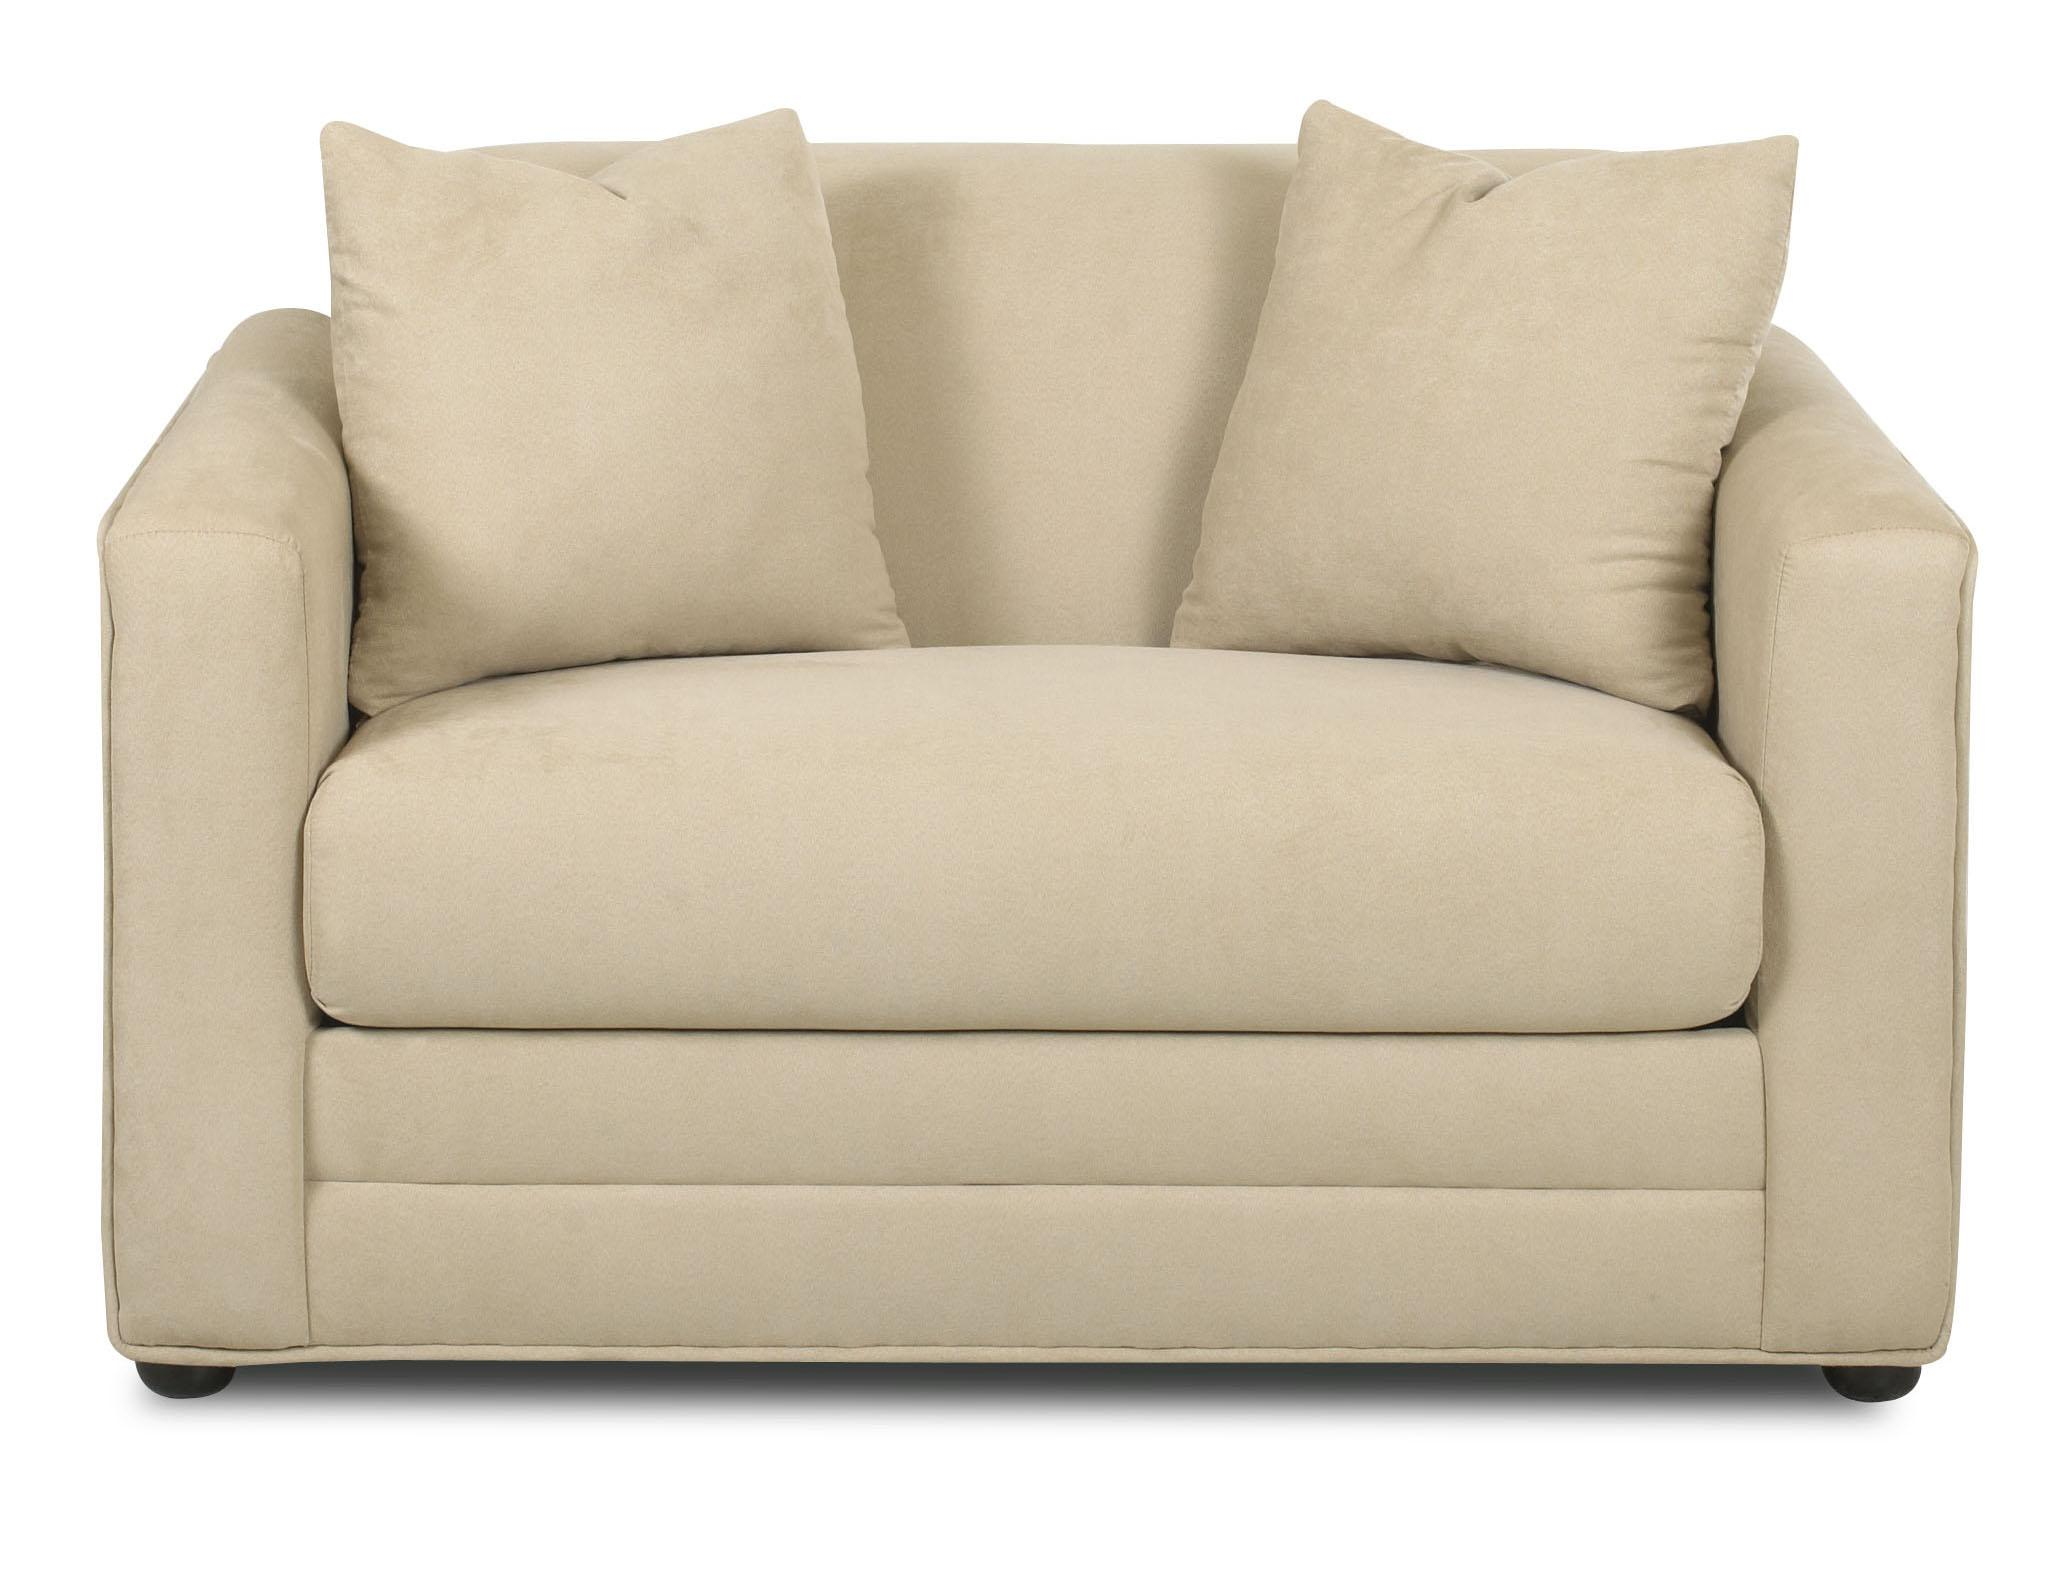 Take Advantage Of Oversized Couch Bed Read These 10 Tips